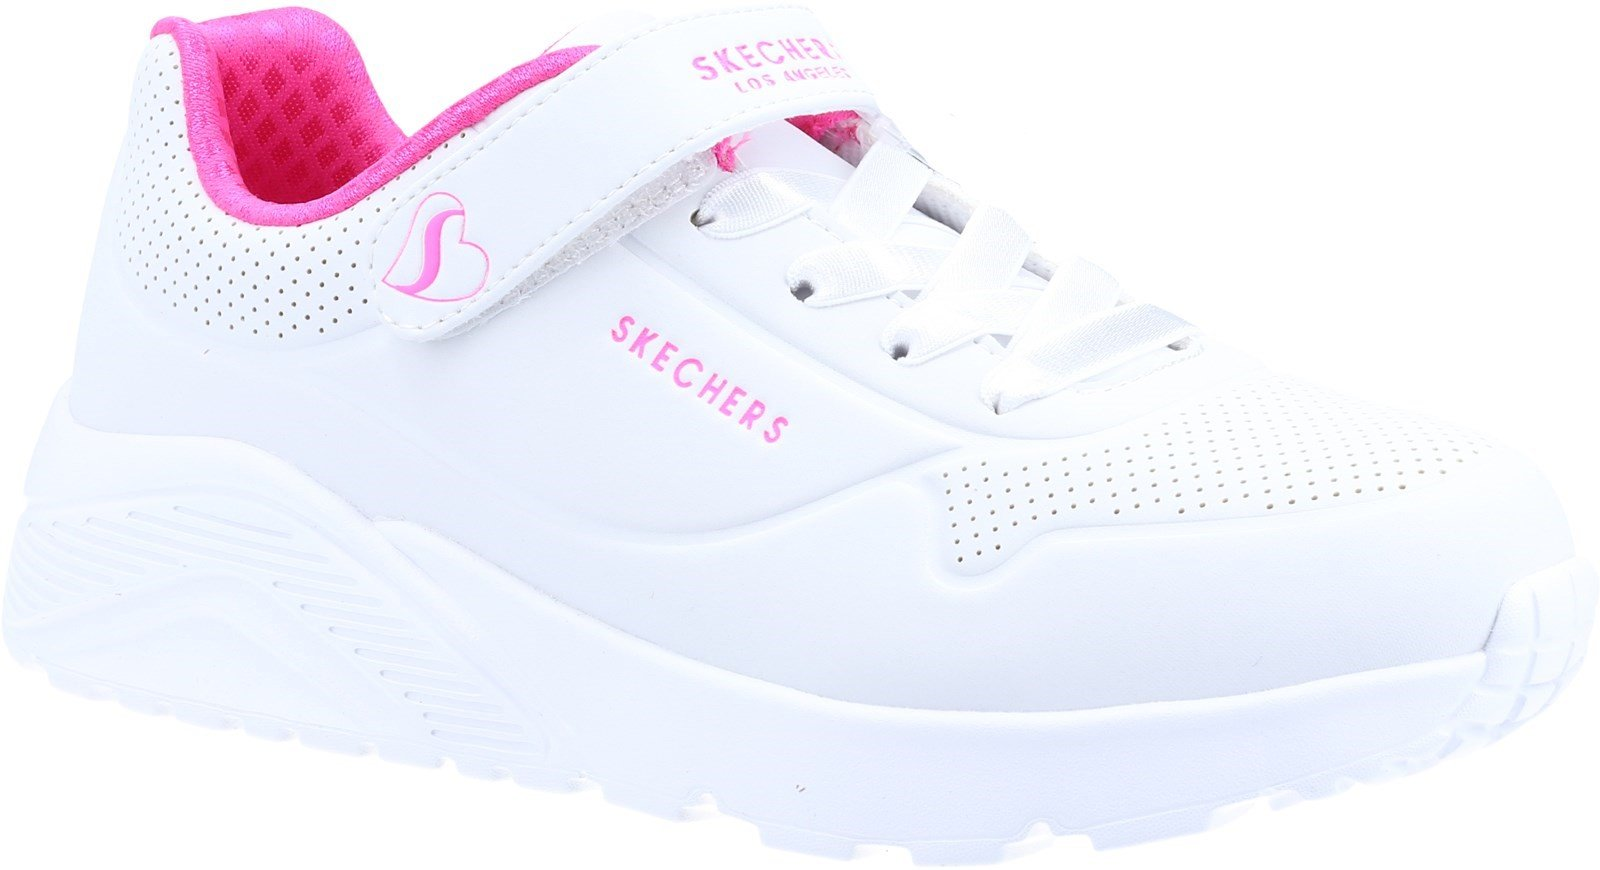 Skechers Kid's Uno Lite Sports Trainer Various Colours 32097 - White Synthetic/H. Pink Trim 10.5